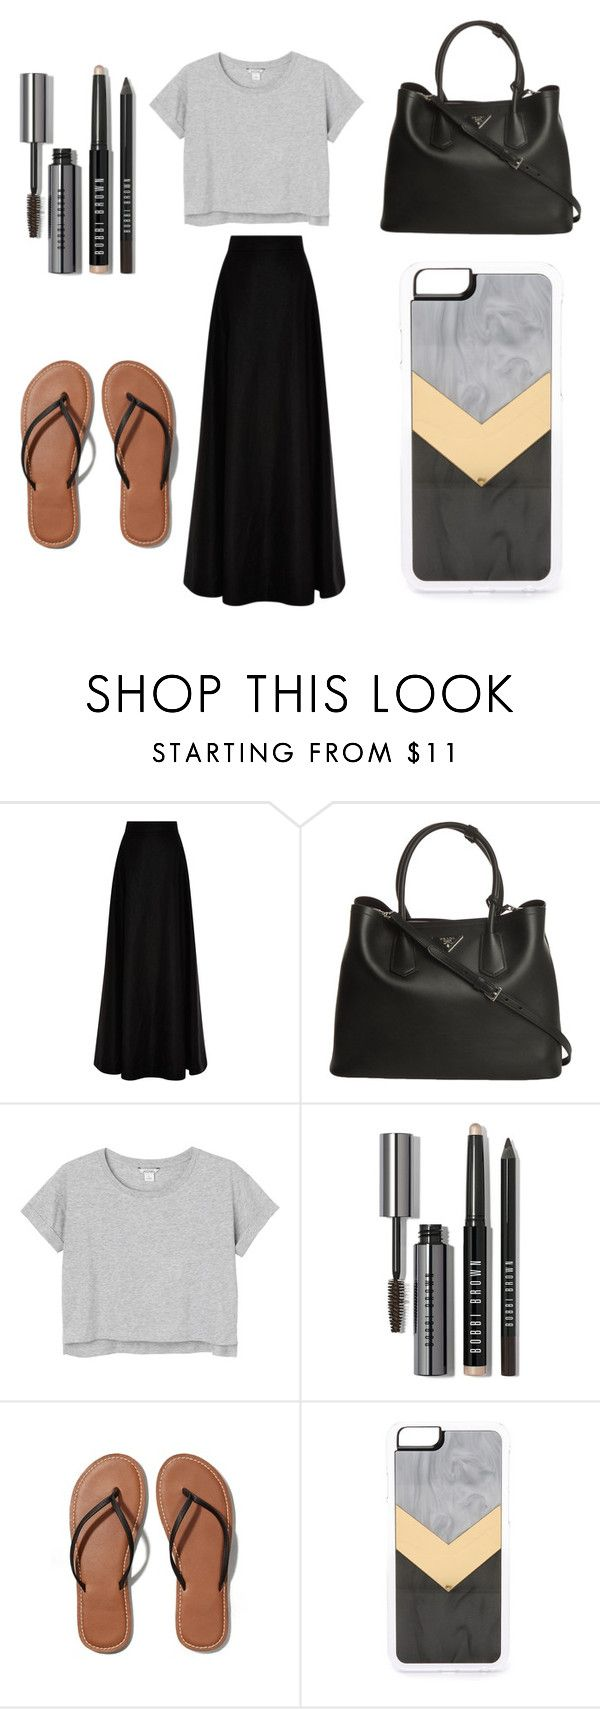 """Untitled #2"" by sofi-the-first1912 on Polyvore featuring Rosie Assoulin, Prada, Monki, Bobbi Brown Cosmetics, Abercrombie & Fitch and Zero Gravity"